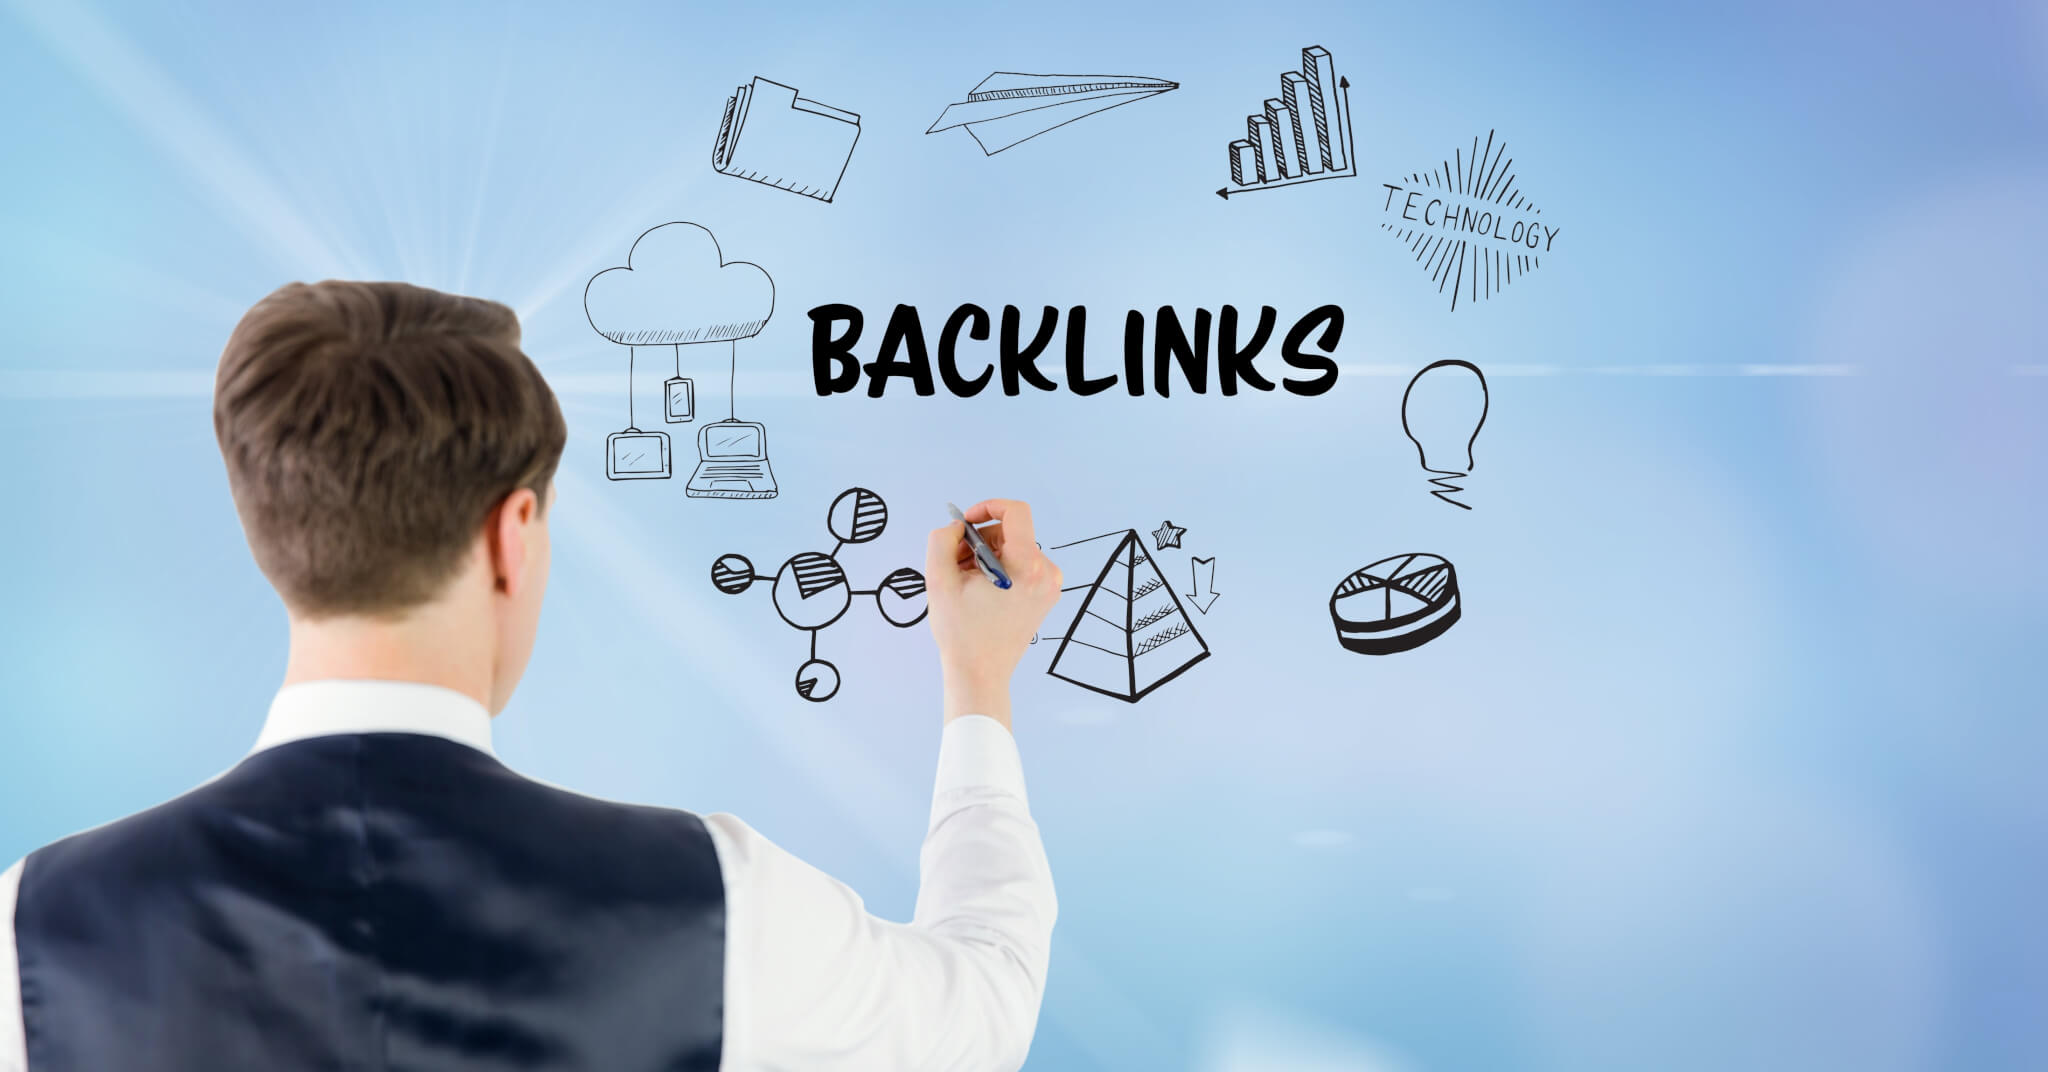 Backlinks are a vital Google ranking factor, but the backlink has to be of high quality in order for it to work positively.